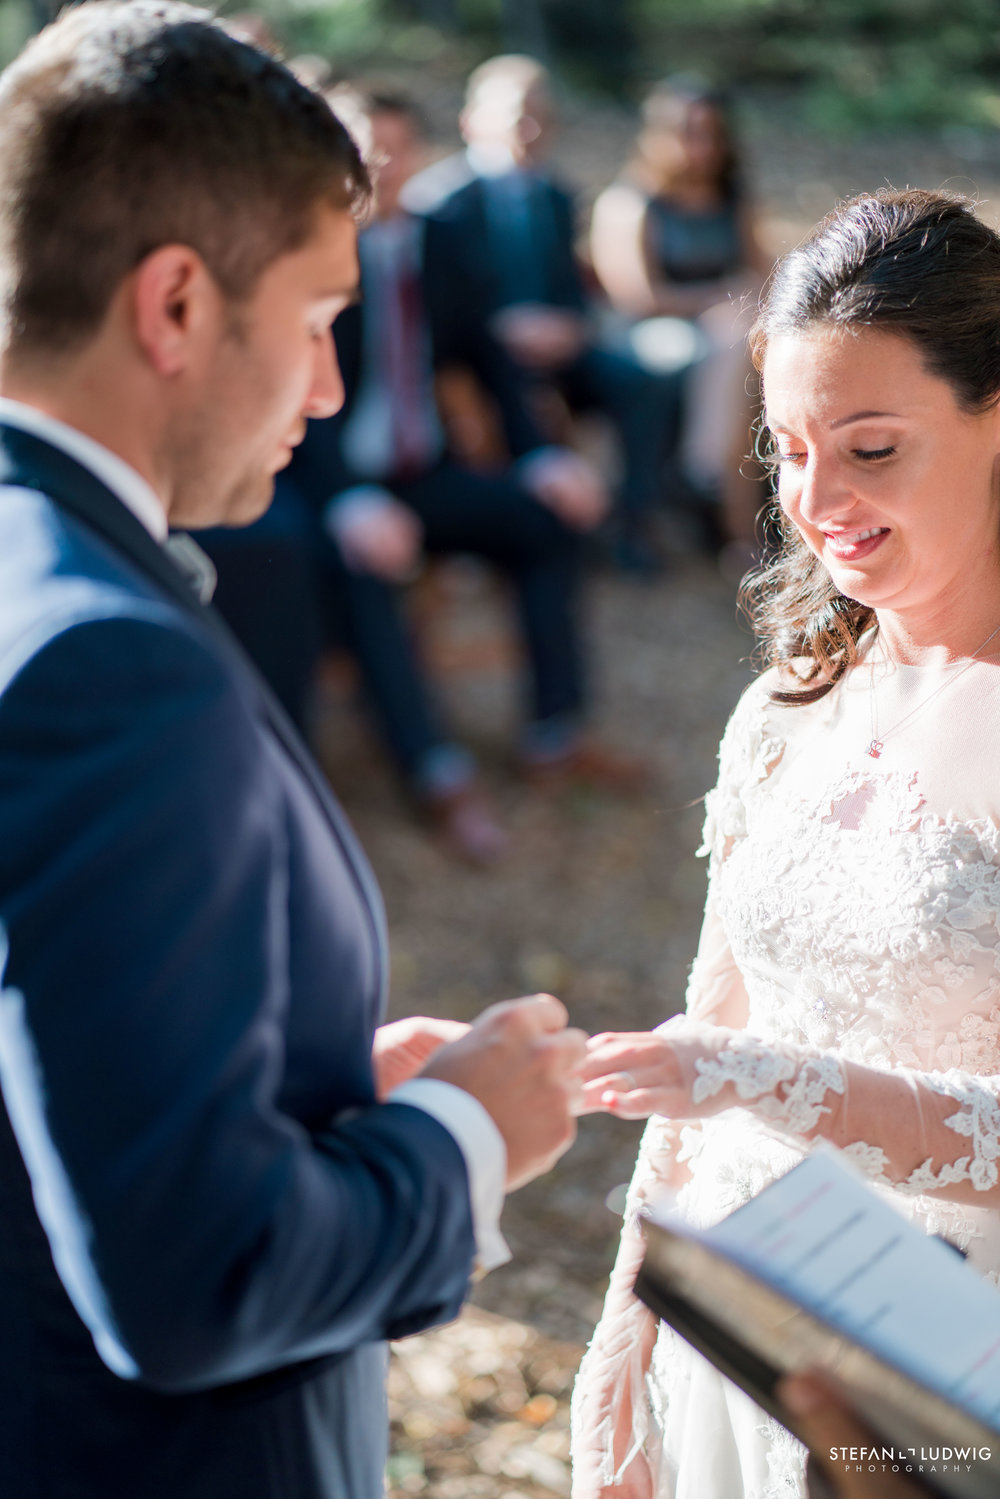 Heather and Andrew Wedding Photography ay Meadow Ridge Farm in Hudson NY by Stefan Ludwig Photography-86.jpg